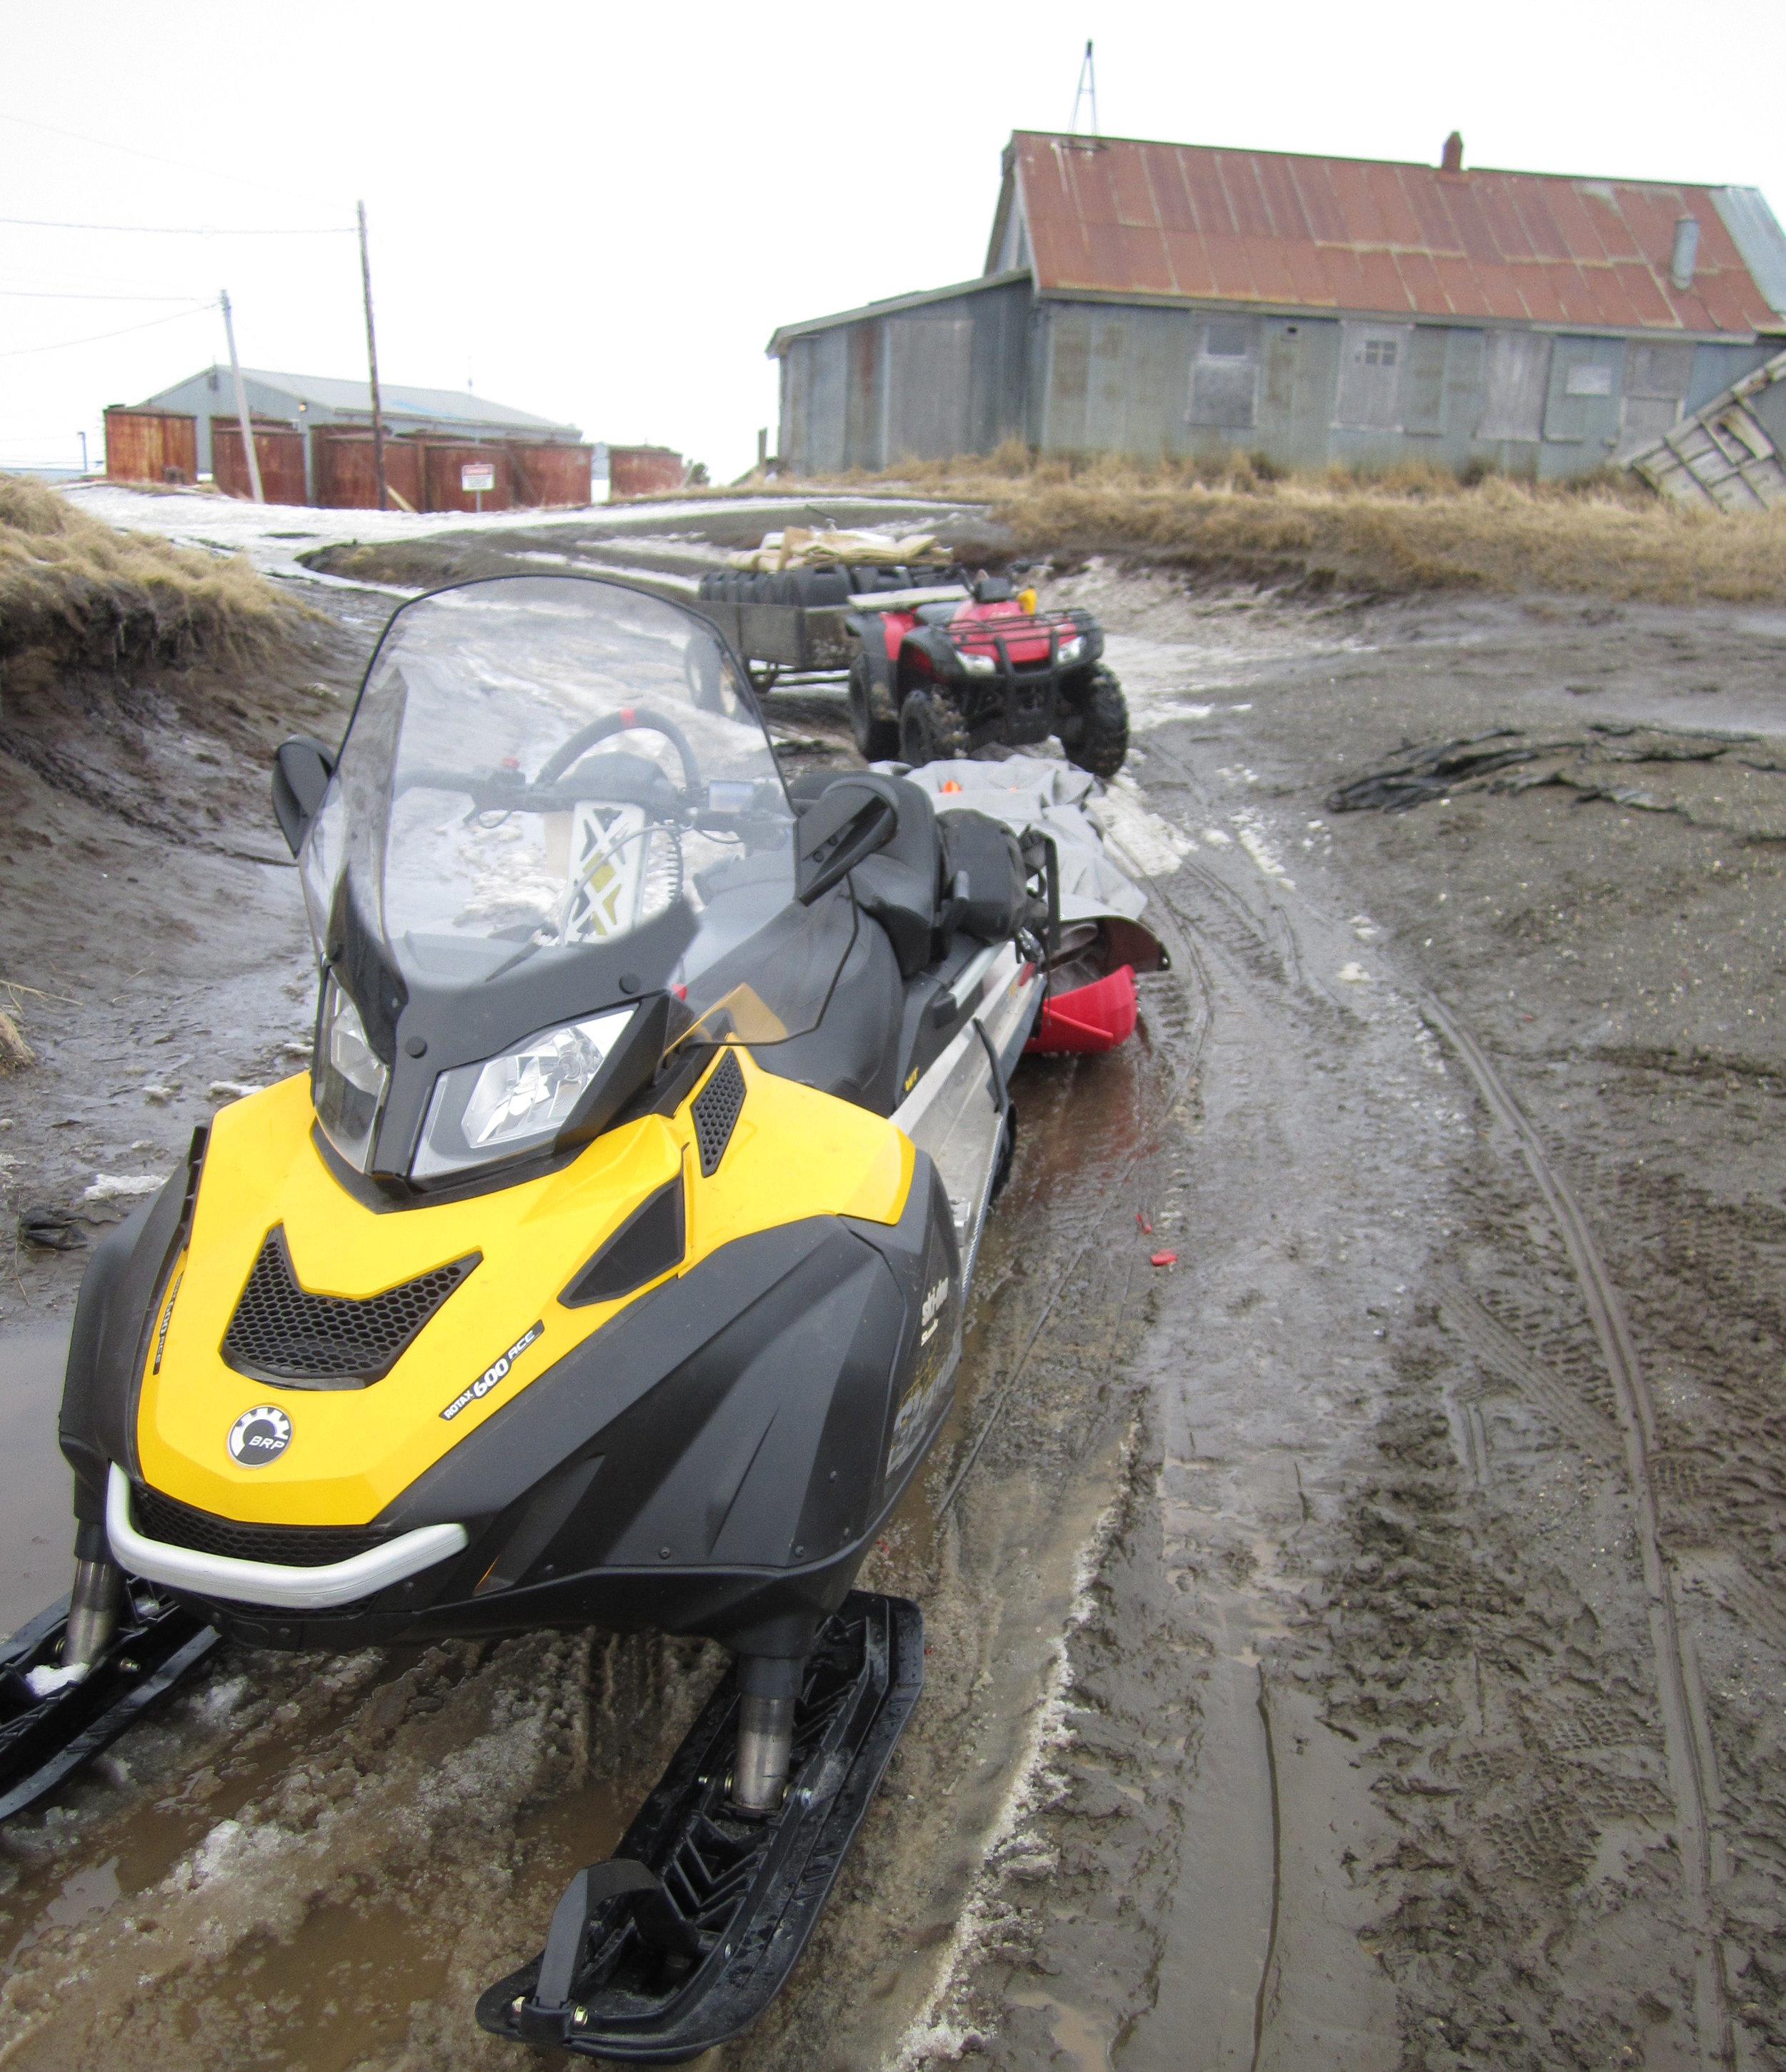 Spring 2014: Clearly conditions in Chevak do not favor using snowmobiles for put-in. Photo: Matt Irinaga